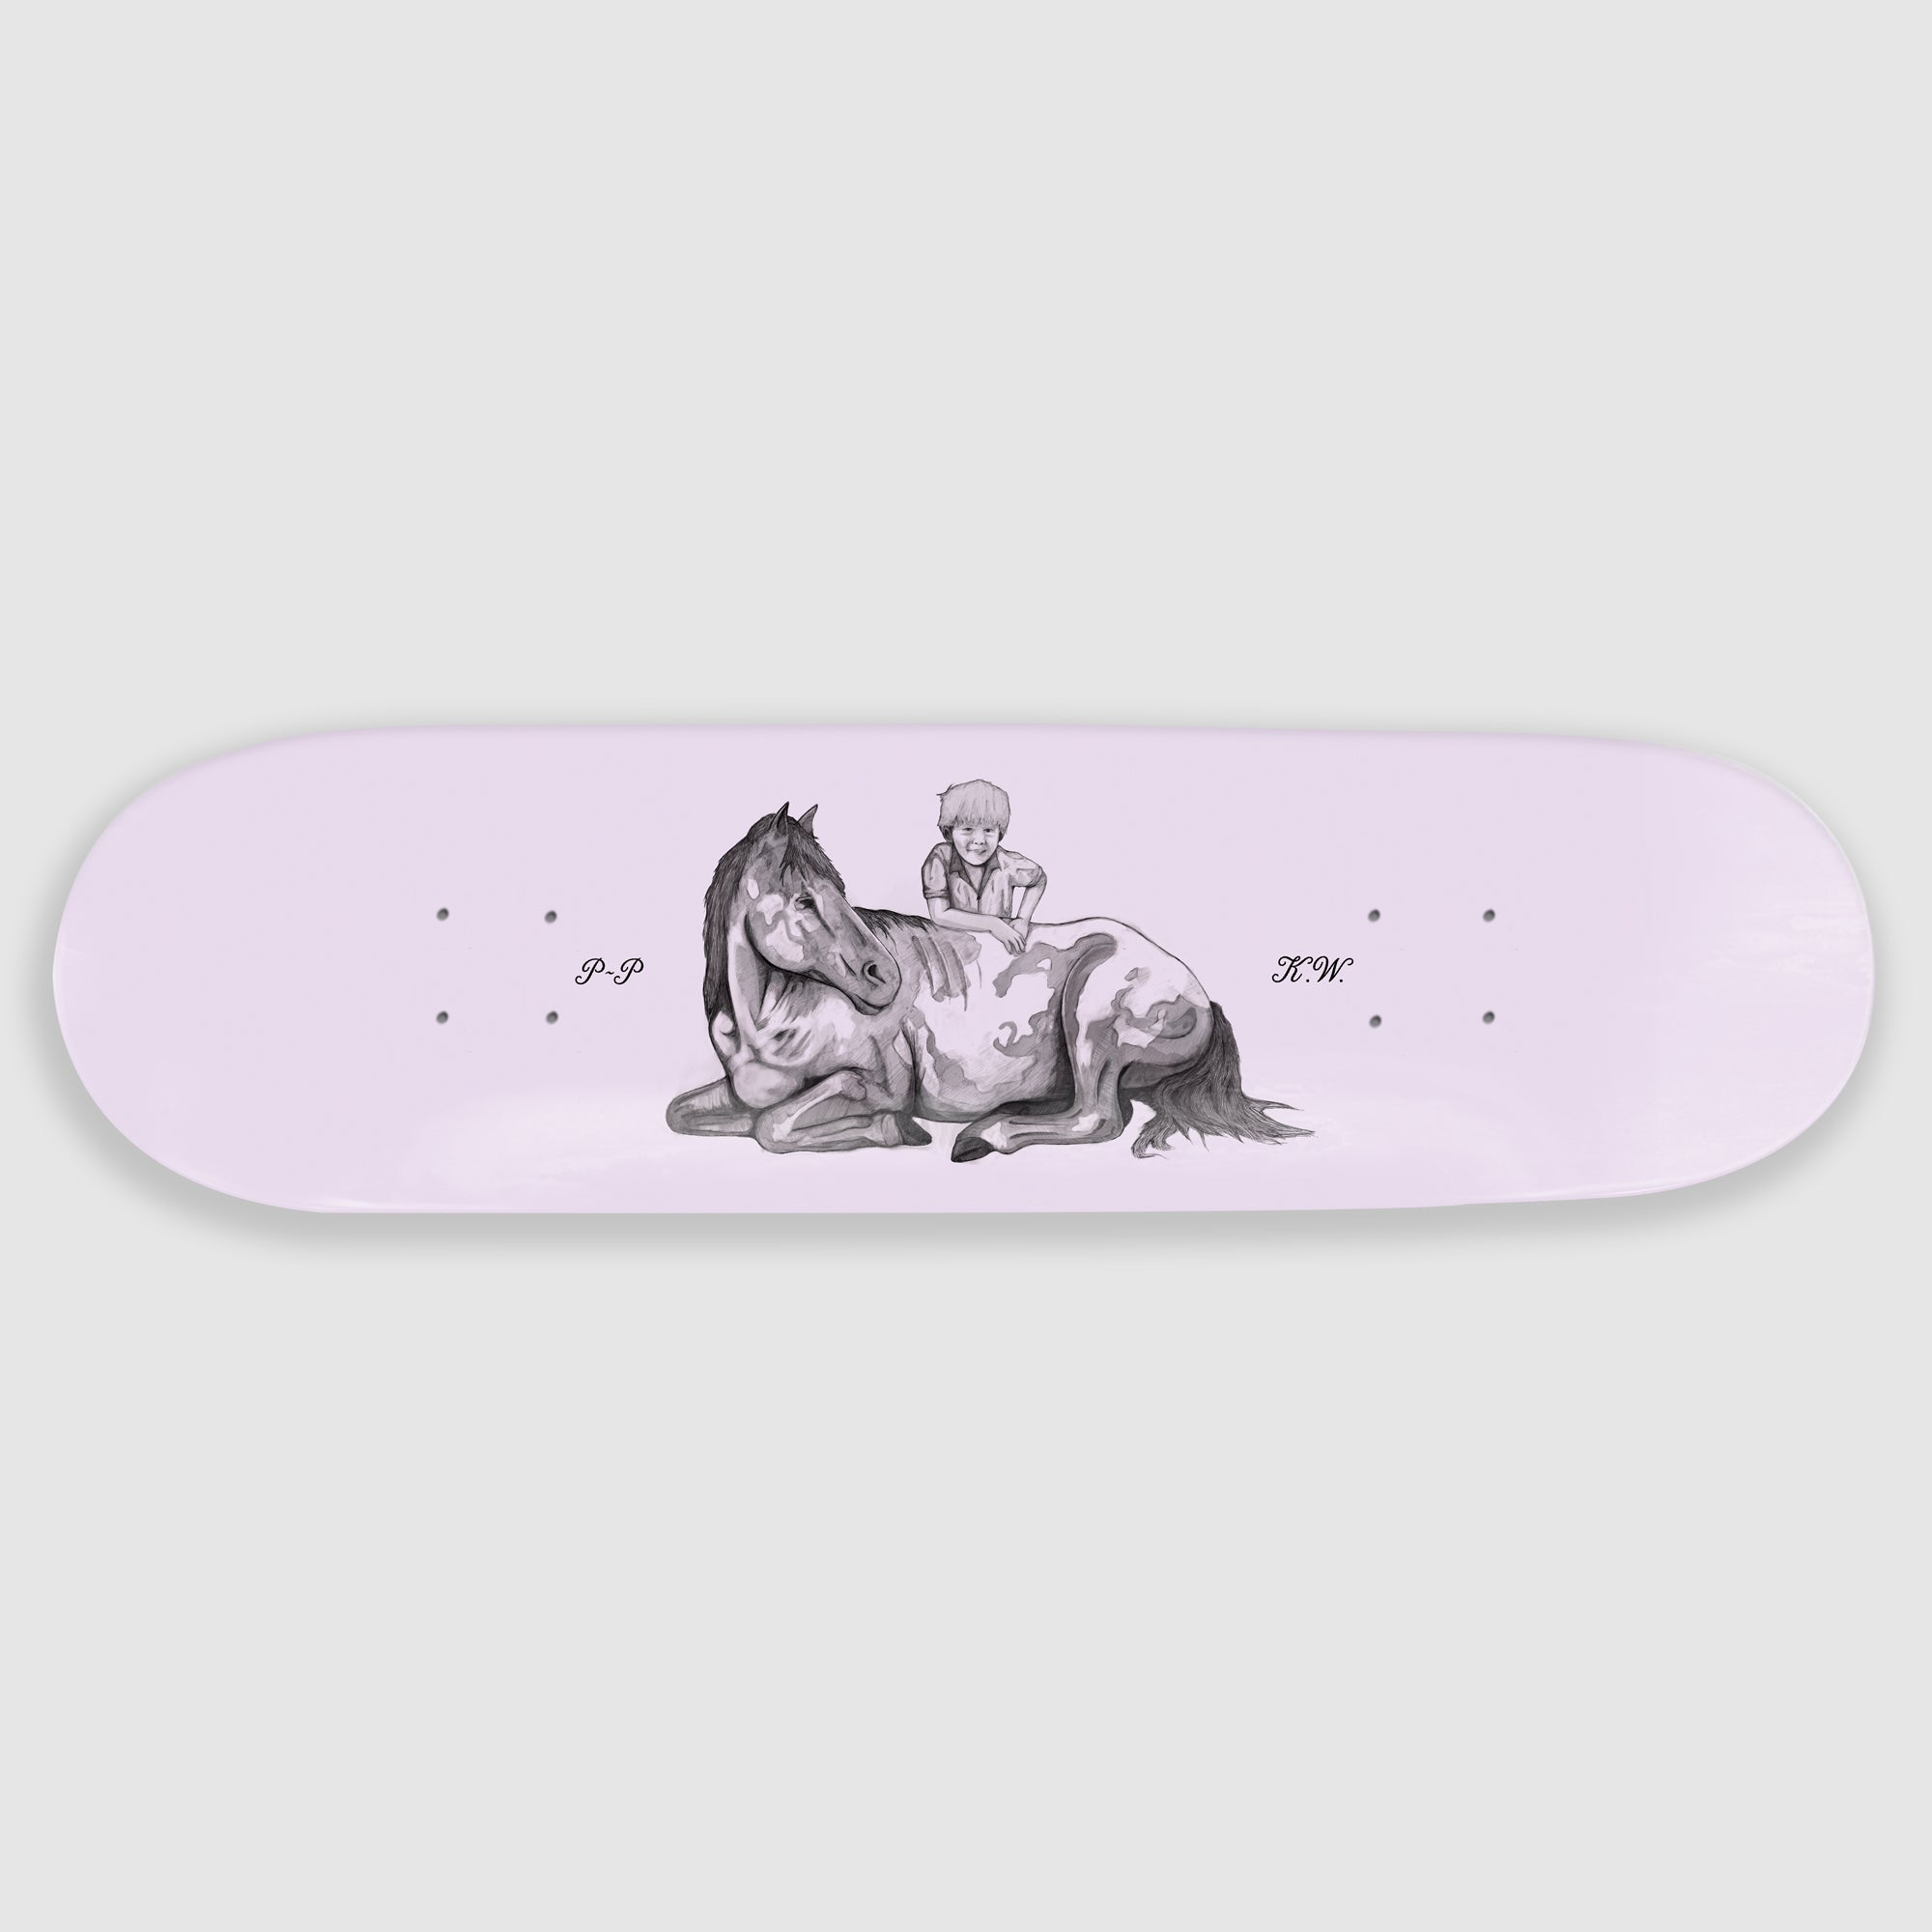 Pass~Port - Singles Series - K.W. Tribute deck - 8.25""